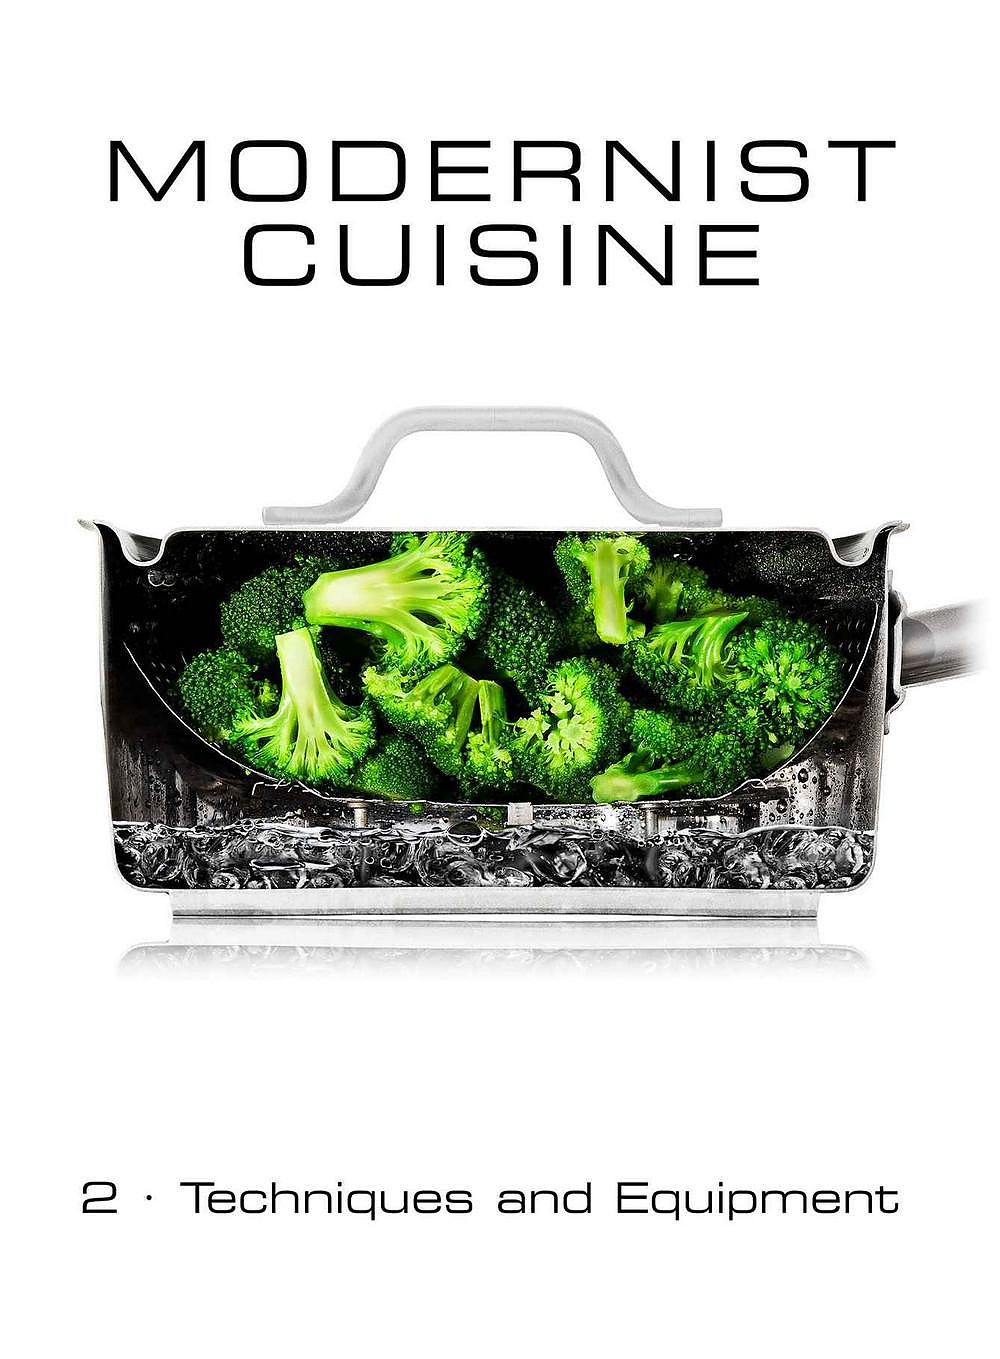 Modernist Cuisine: A Cookbook Illustrated with Ryan Smith's Photography.